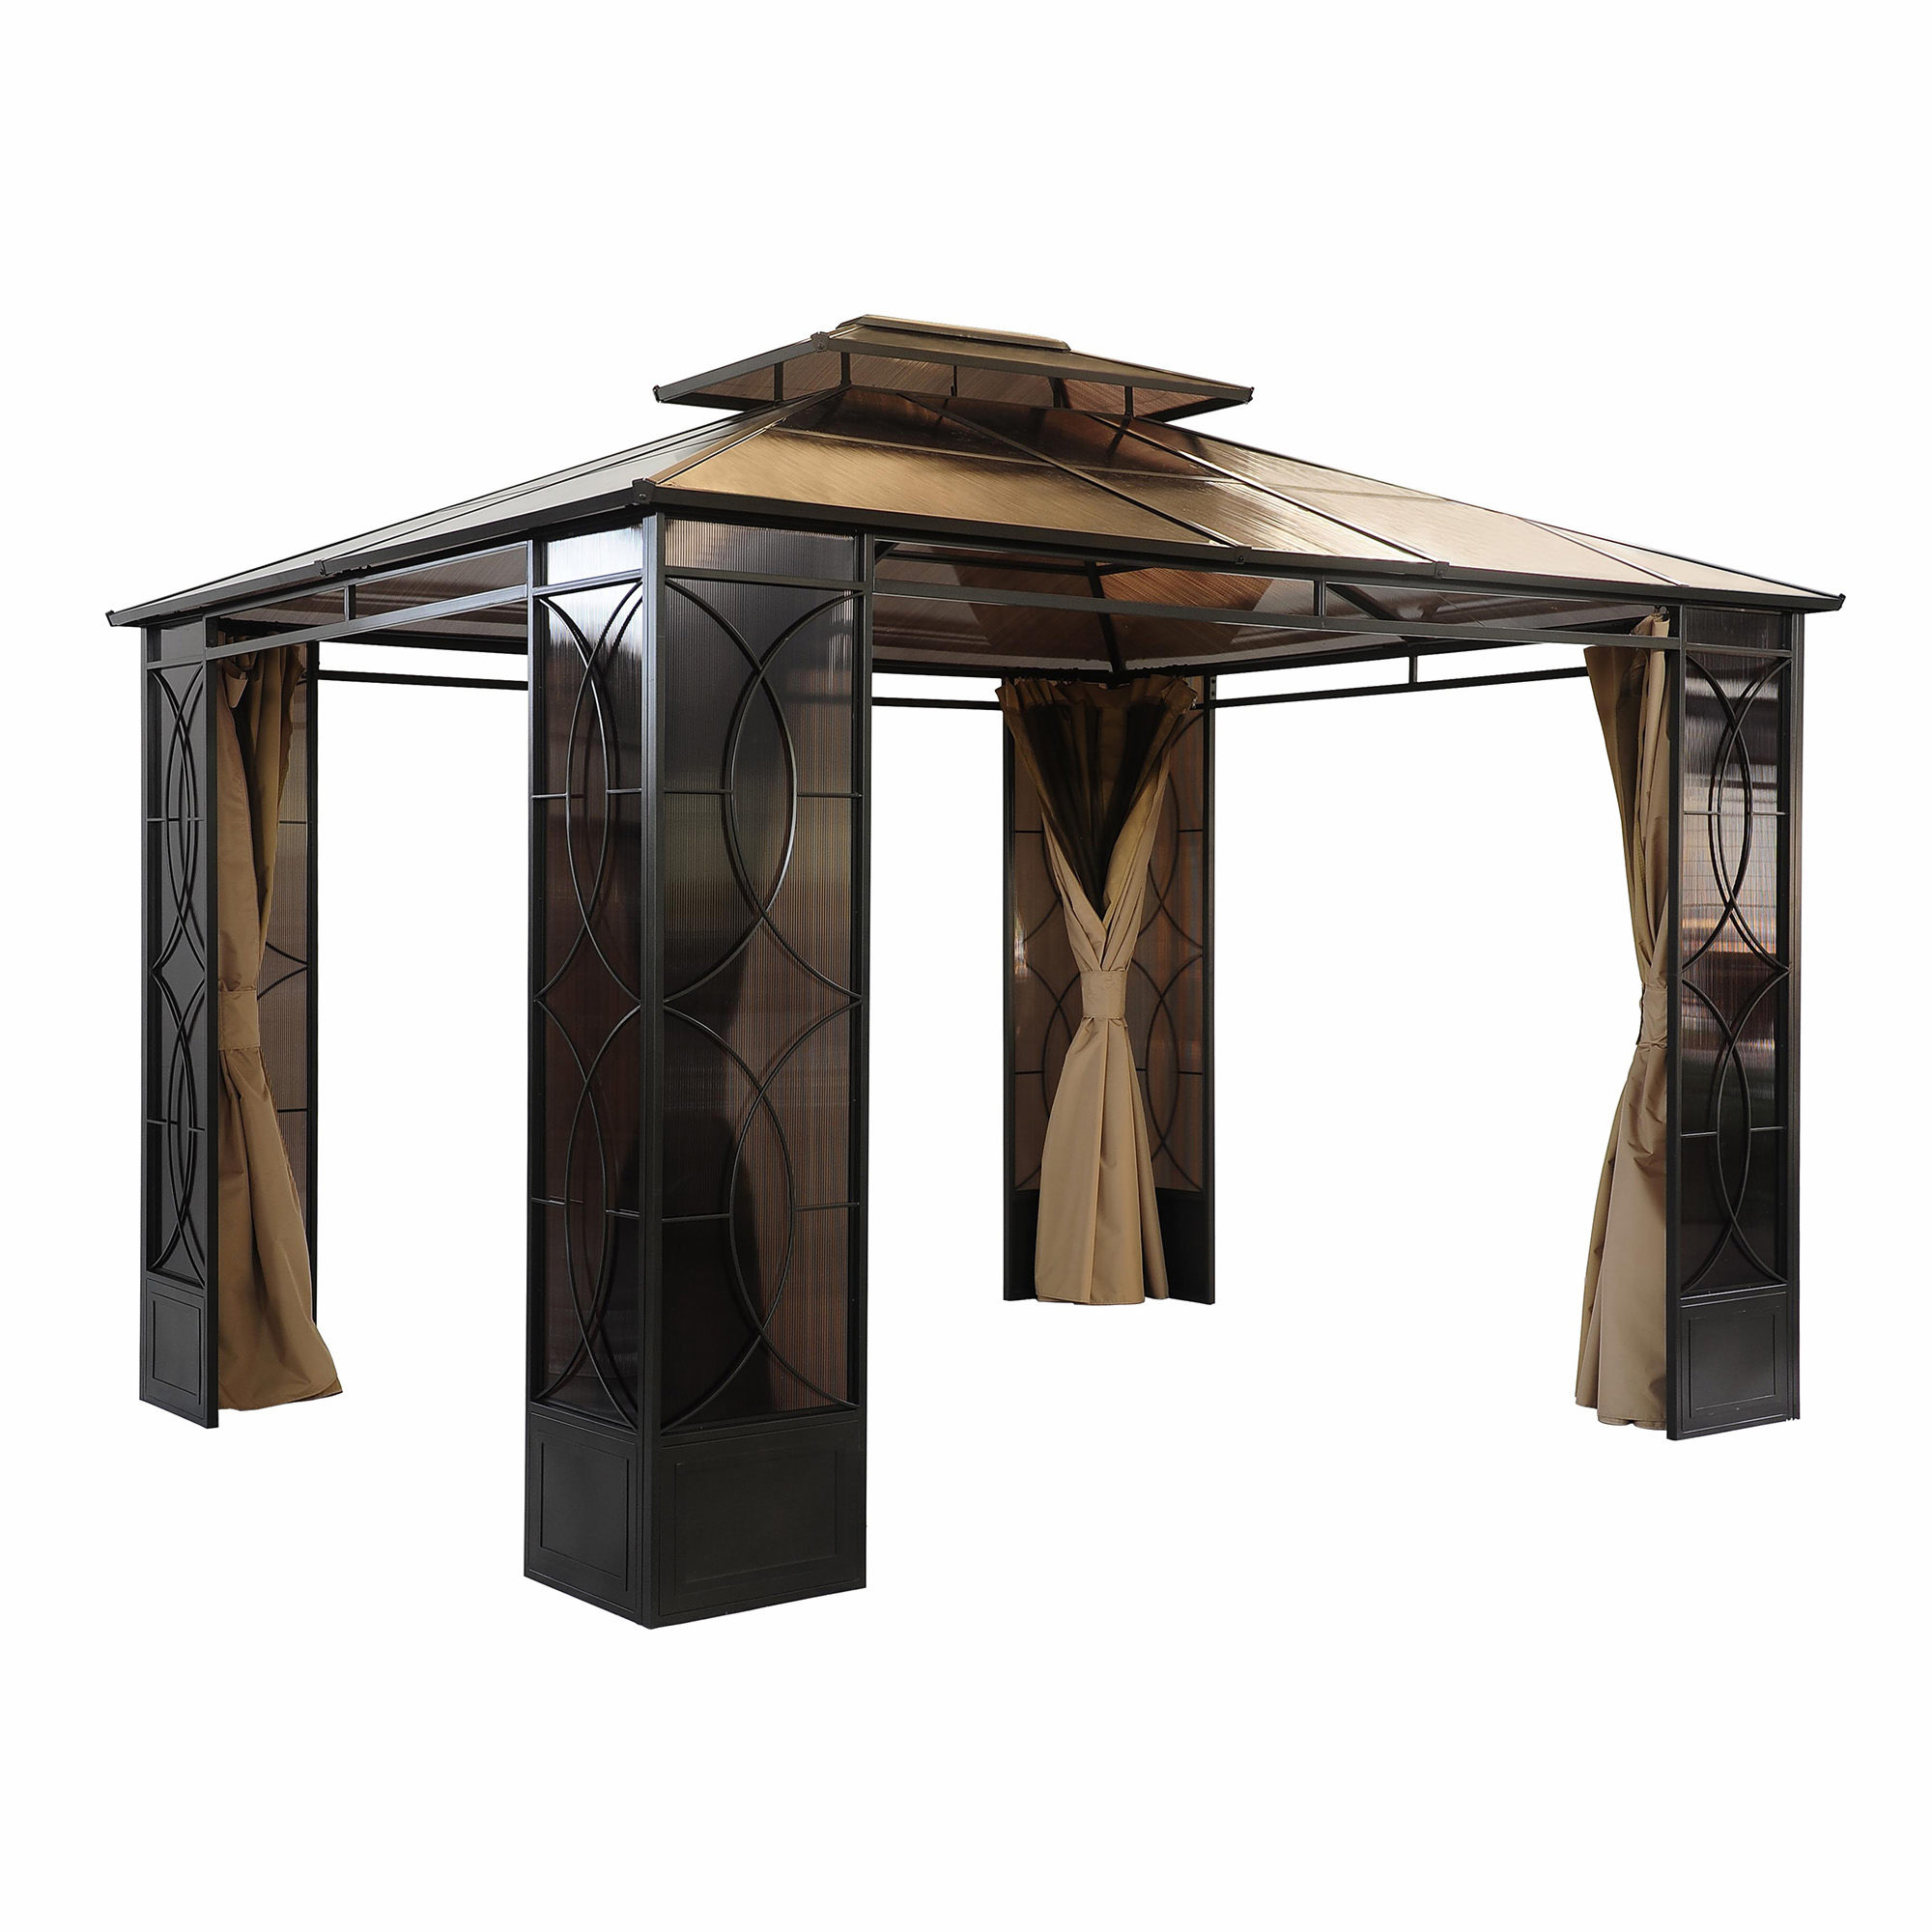 Exquisite sunjoy gazebo for garden ideas with sunjoy hardtop gazebo and sunjoy grill gazebo